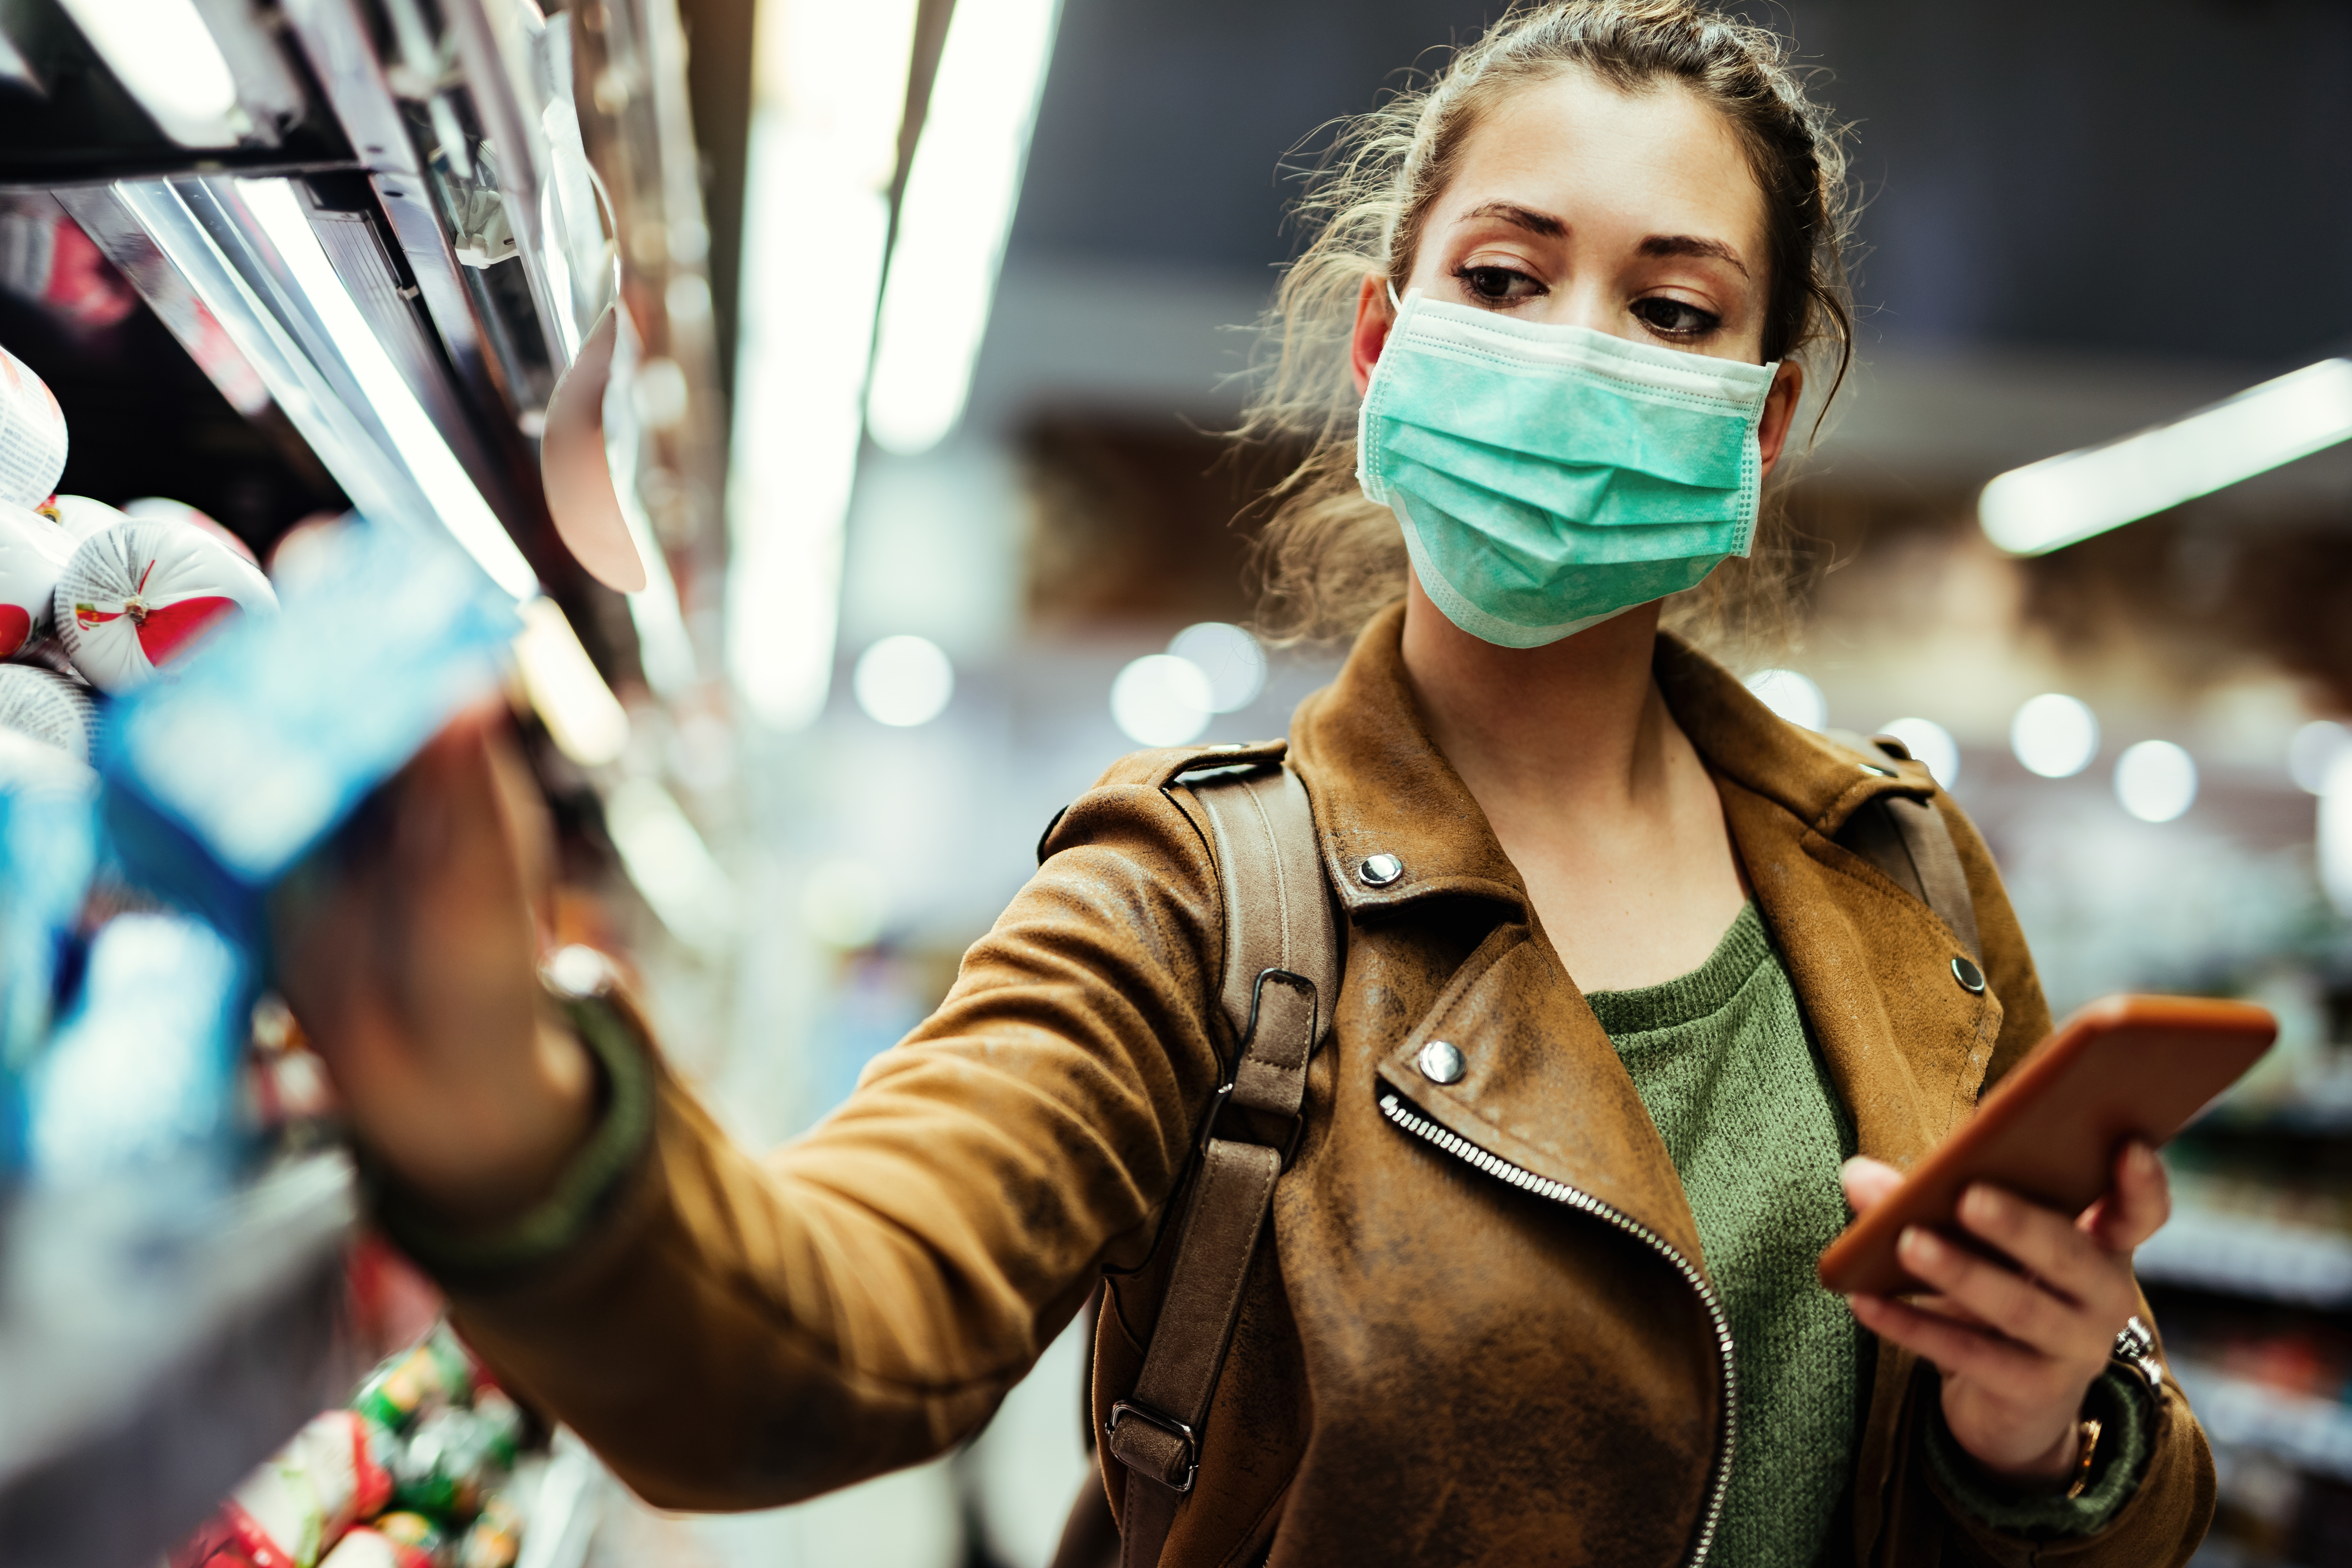 Woman wearing protective mask while using cell phone and buying food in grocery store